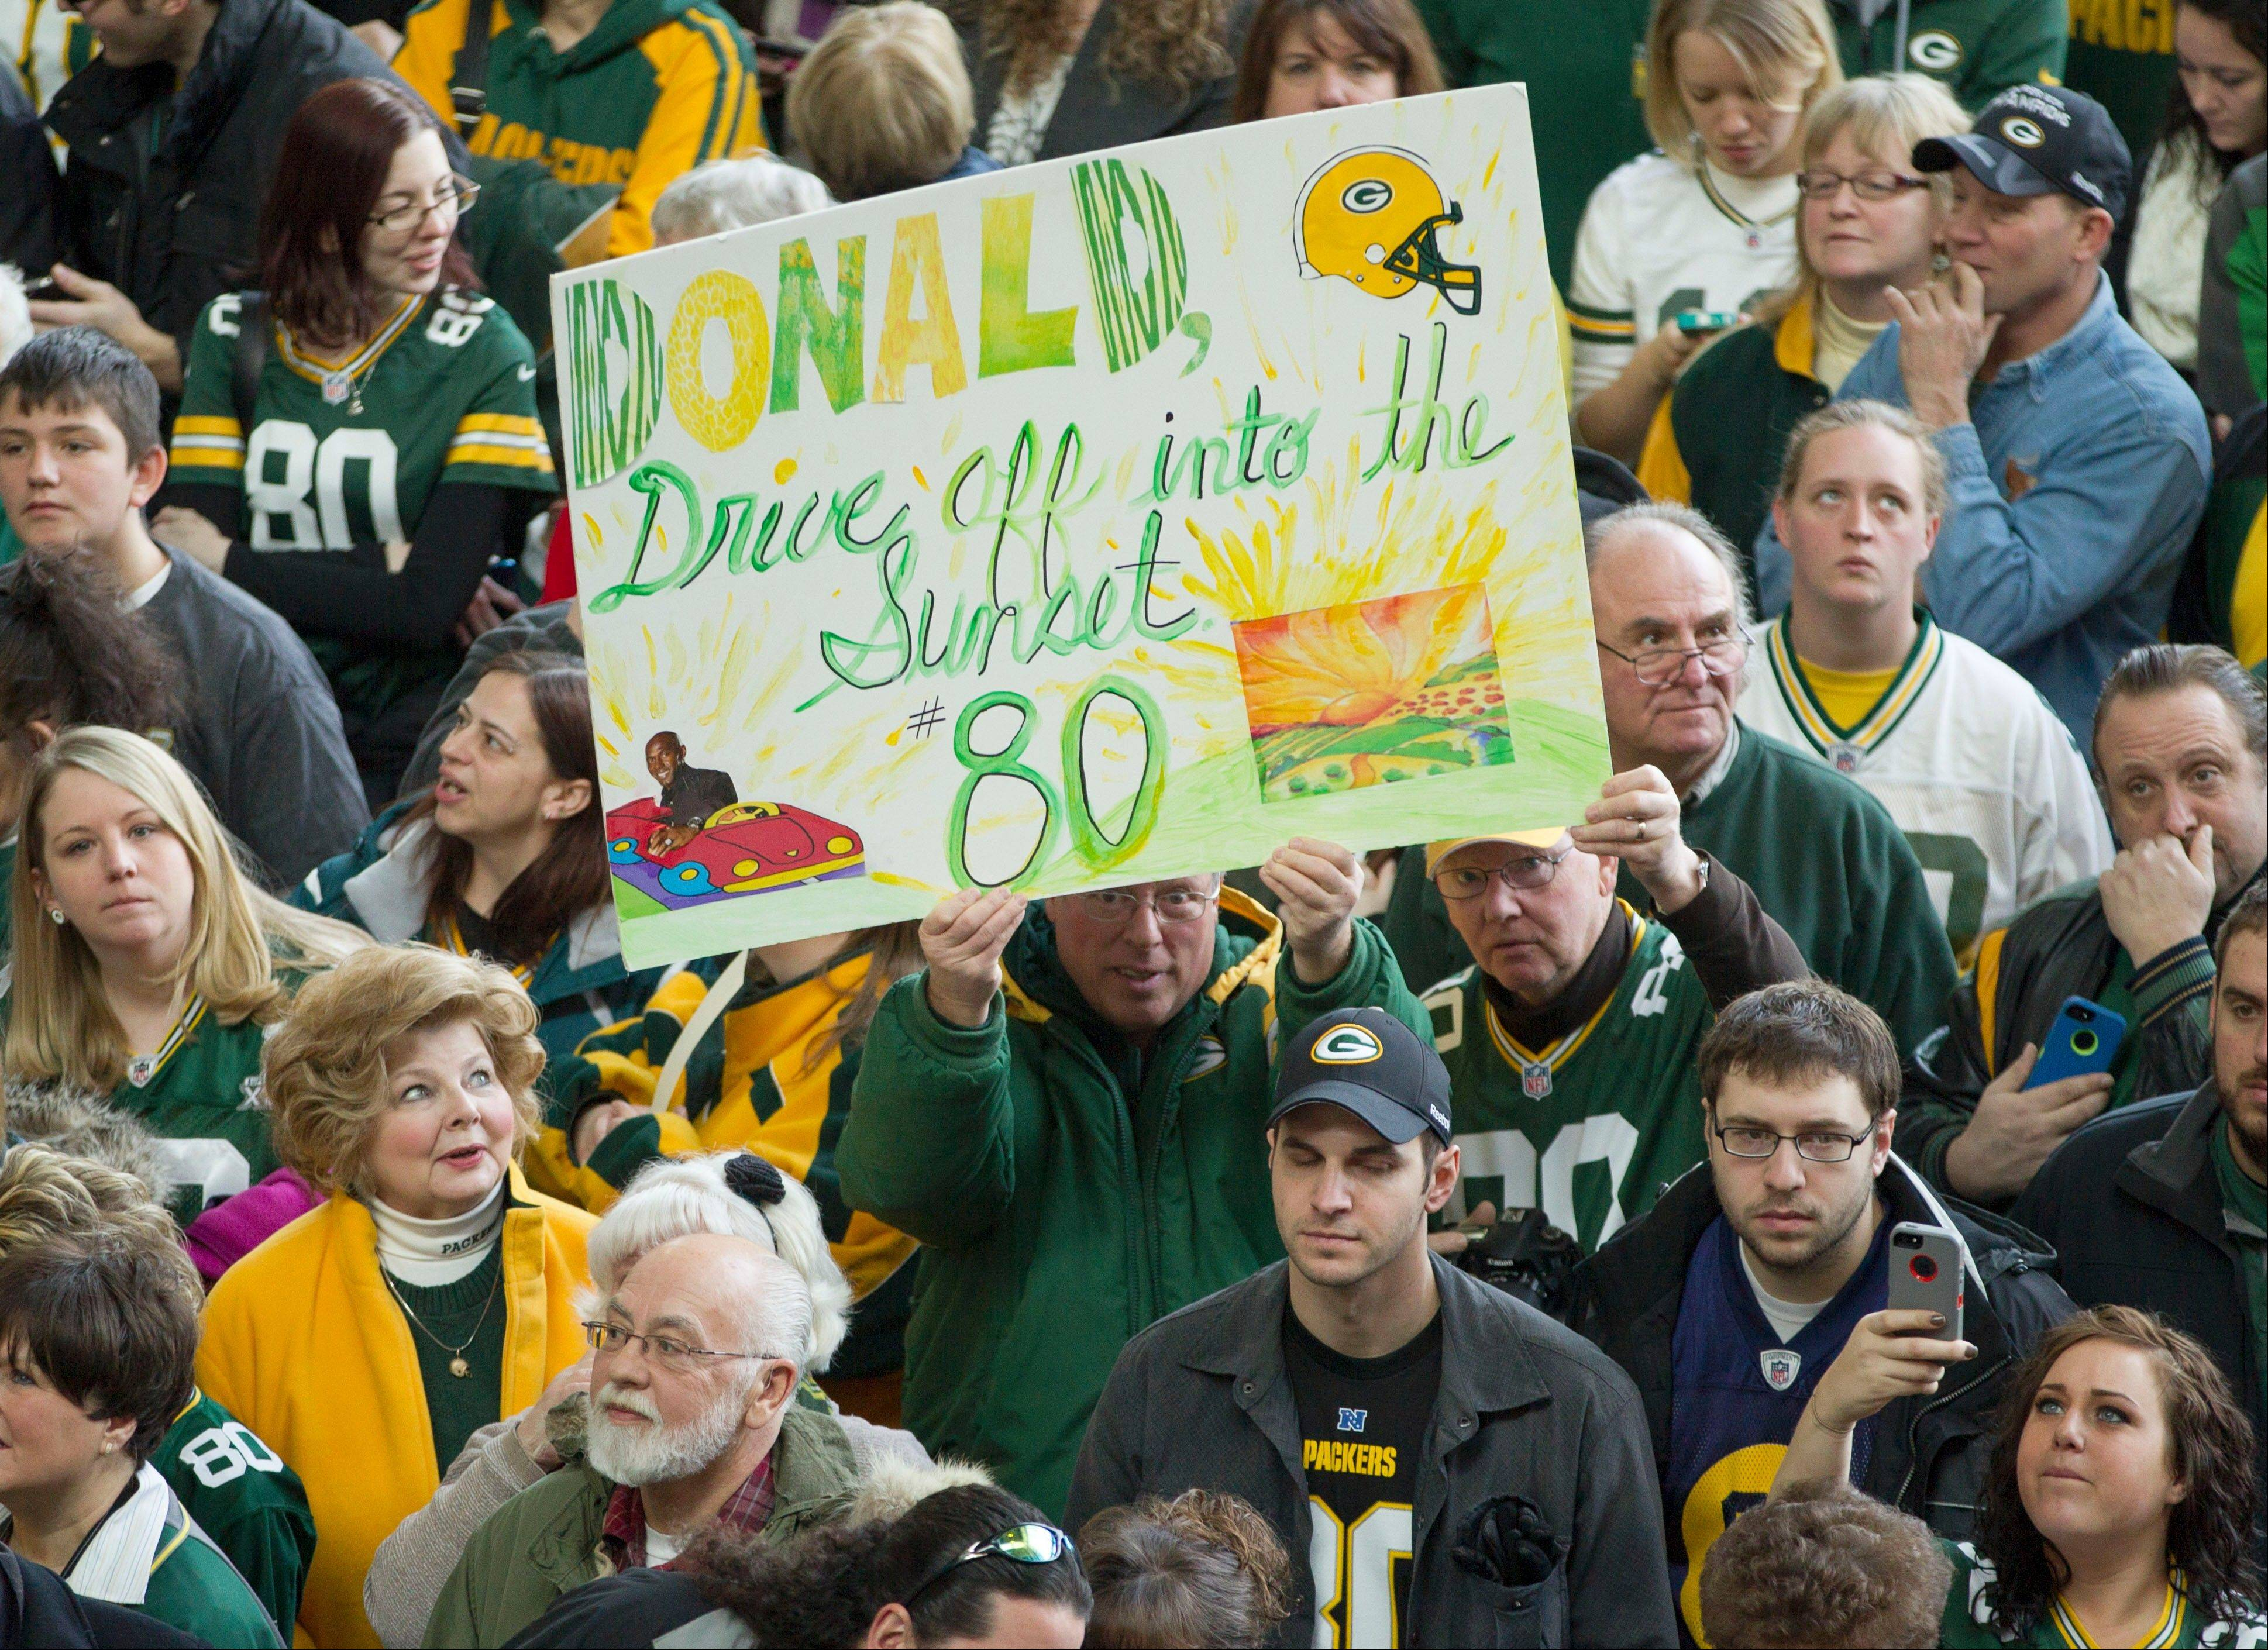 Fans hold up a sign in support for Green Packers all time leading receiver, Donald Driver, during his retirement ceremony Wednesday, Feb. 6, 2013 at Lambeau Field in Green Bay, Wis.